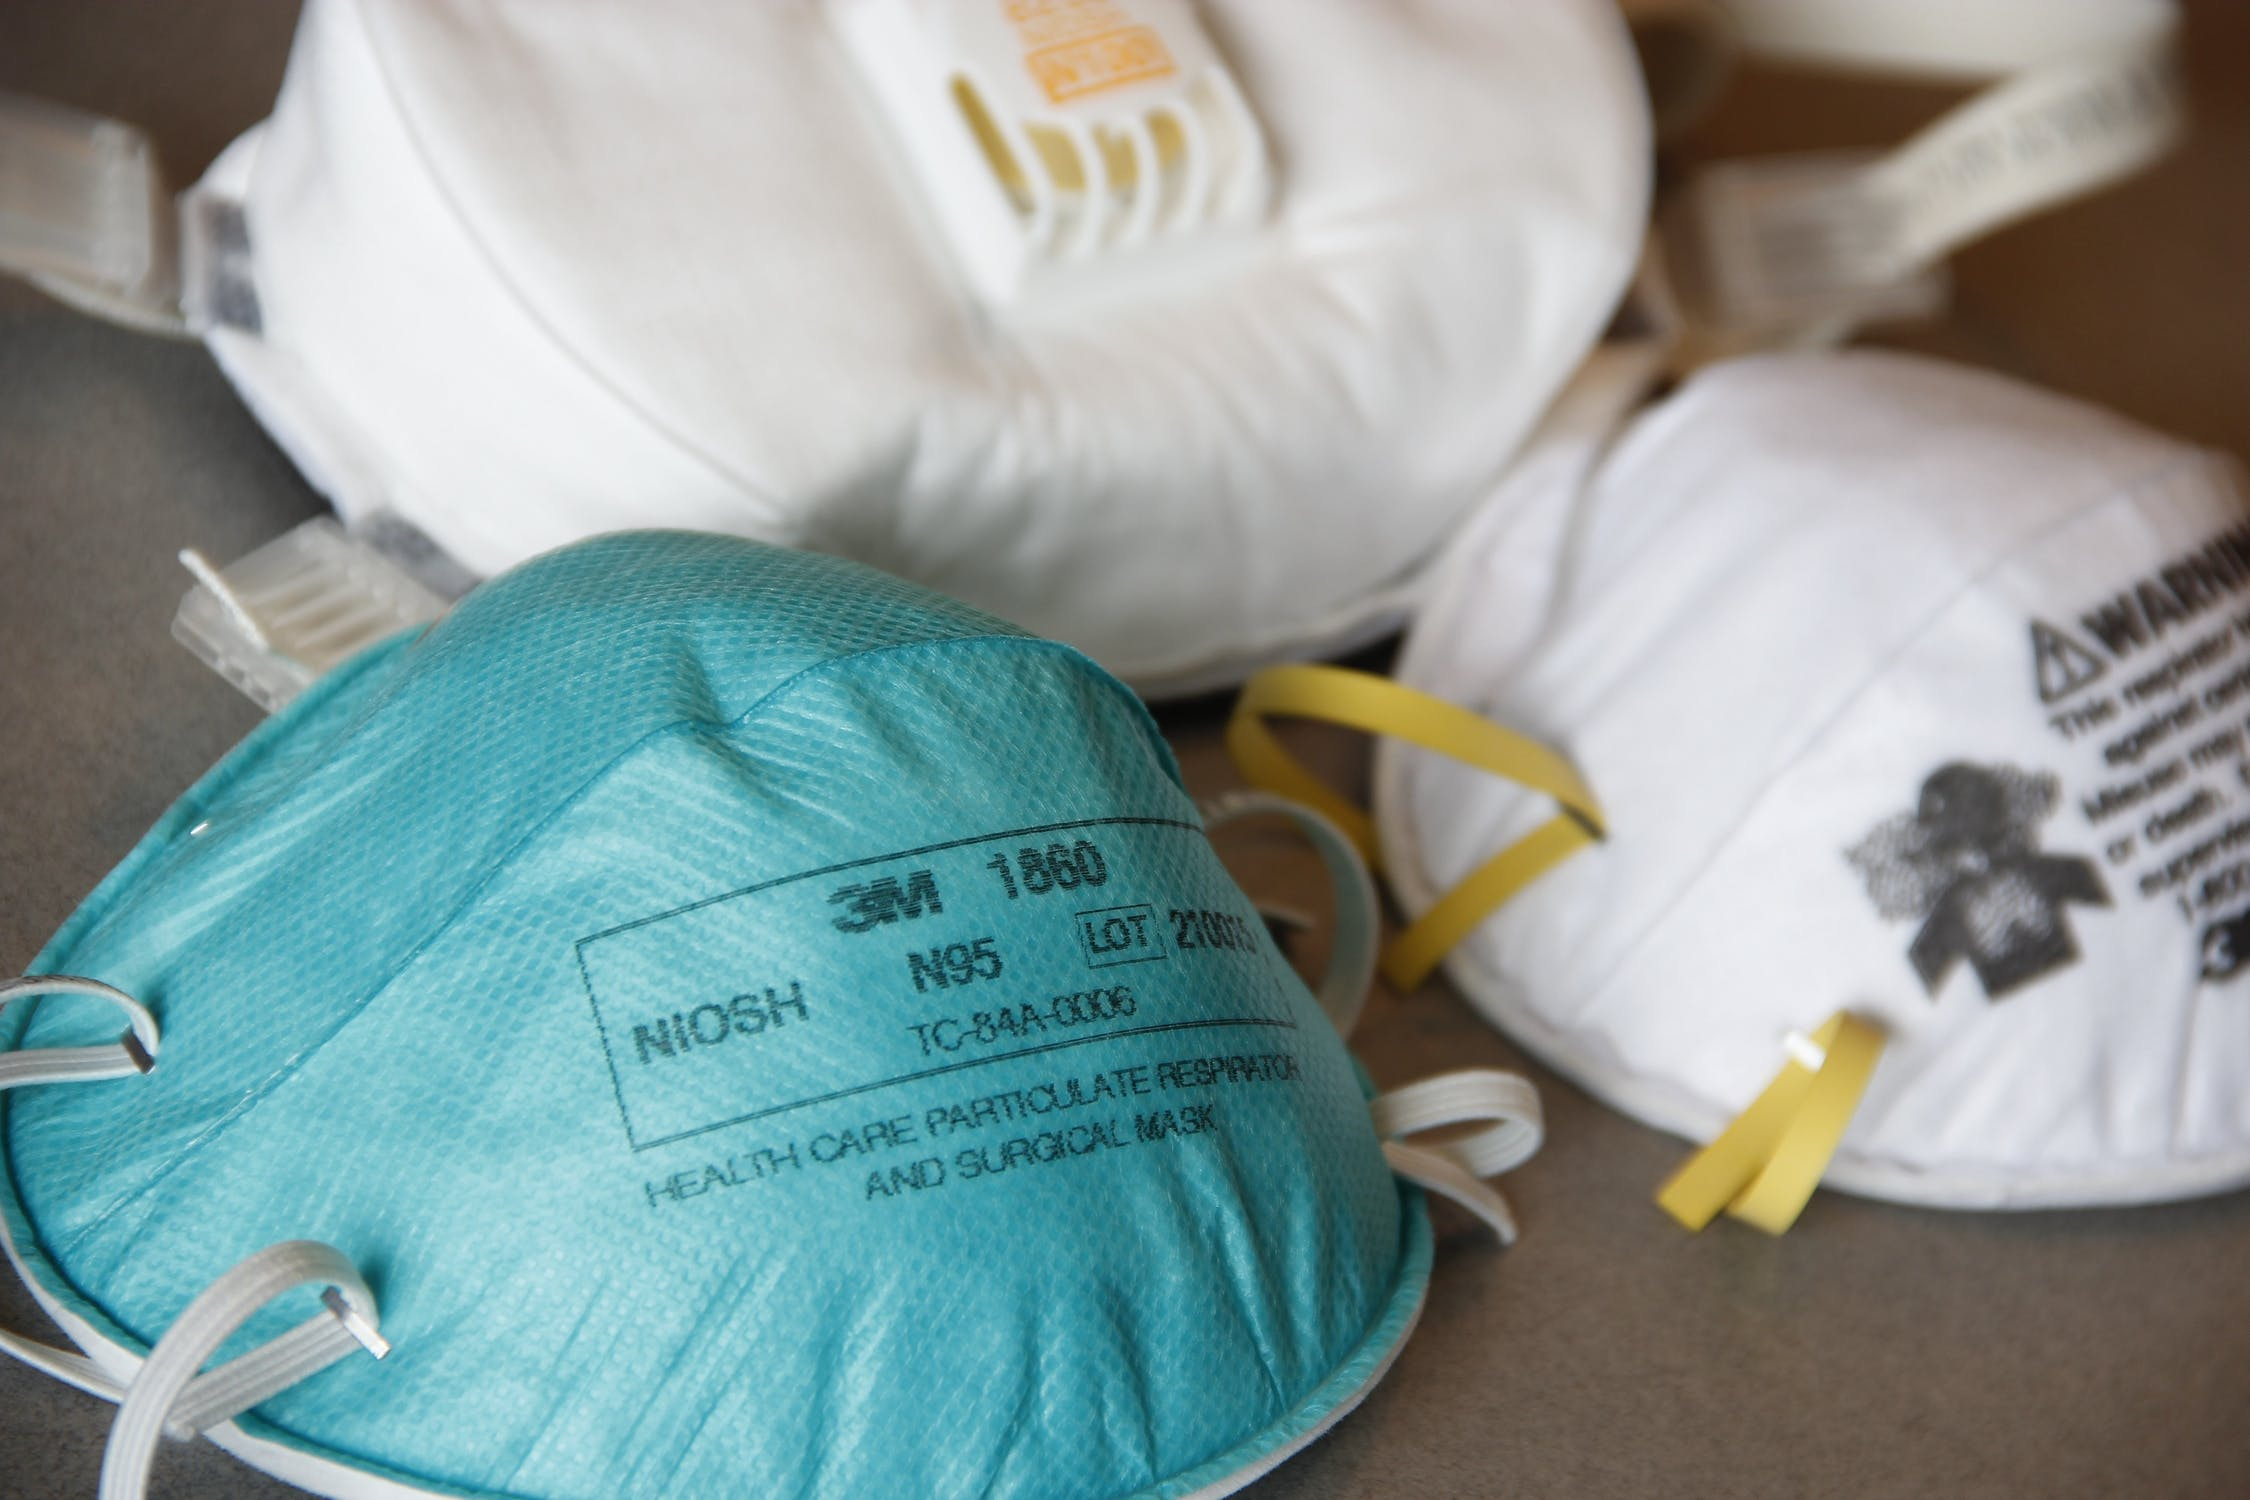 Heating Could Be the Best Way to Disinfect N95 Masks for Reuse